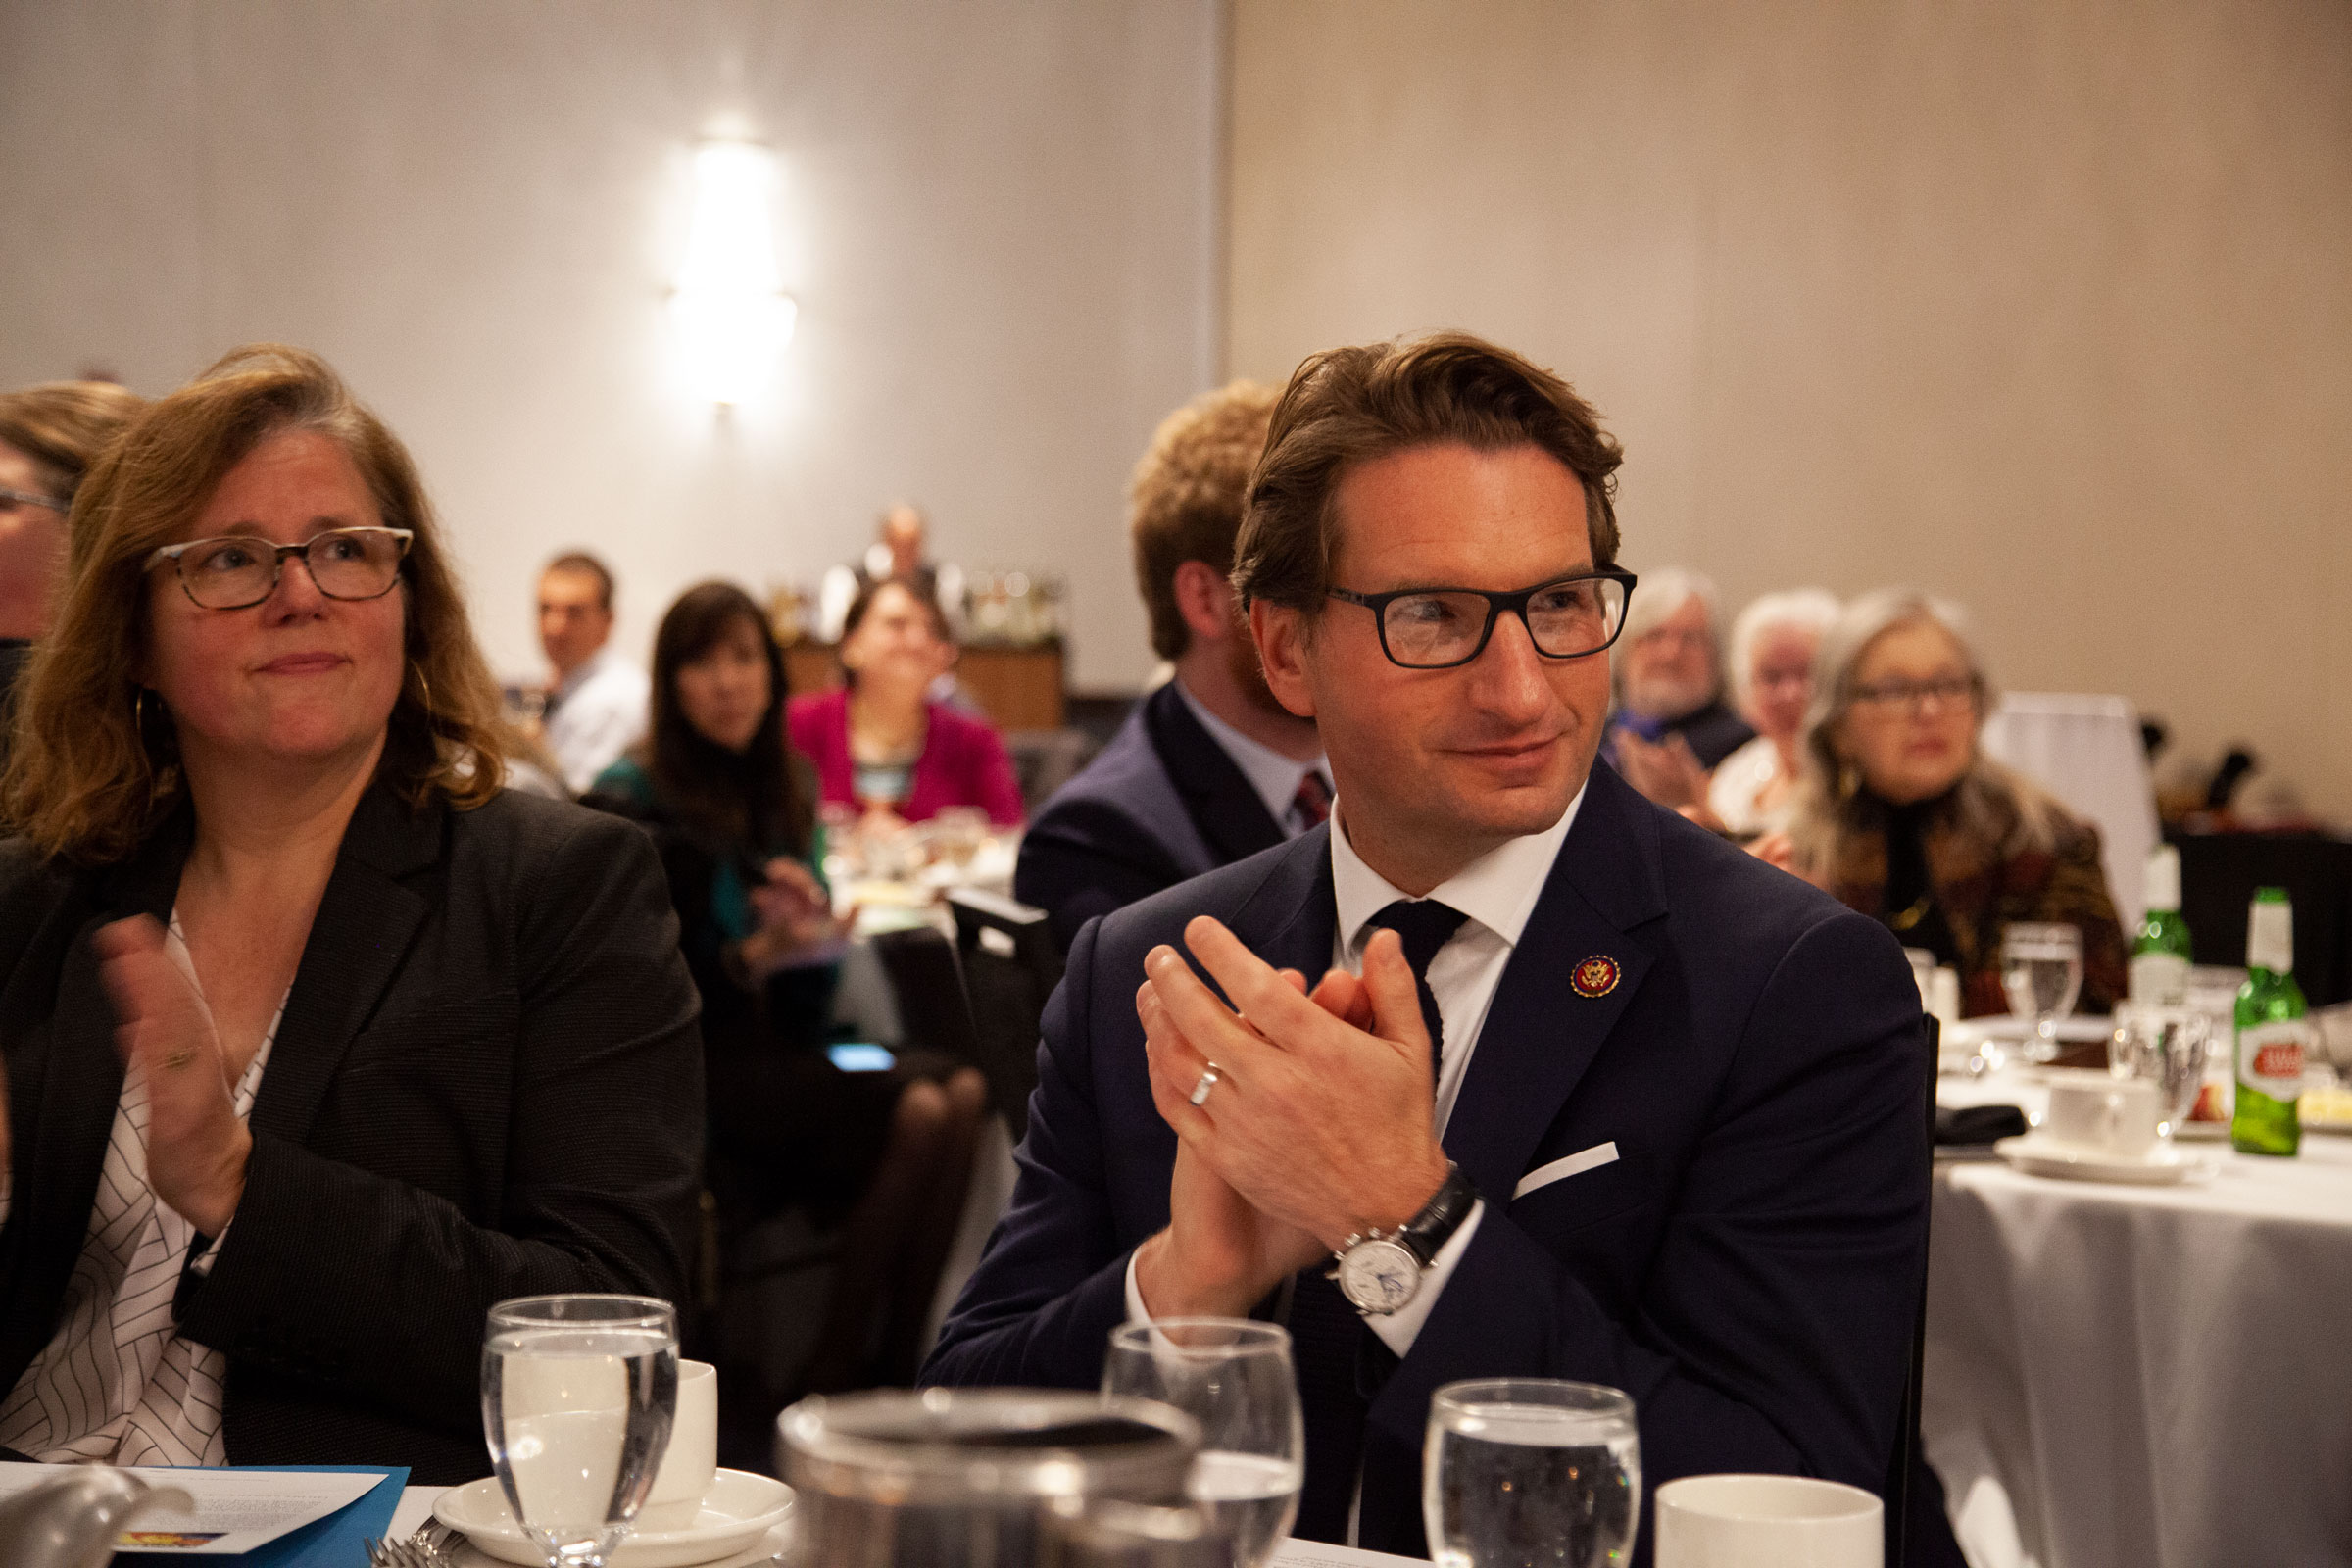 Dean Phillips and Sarah Morrow attend a campaign dinner.